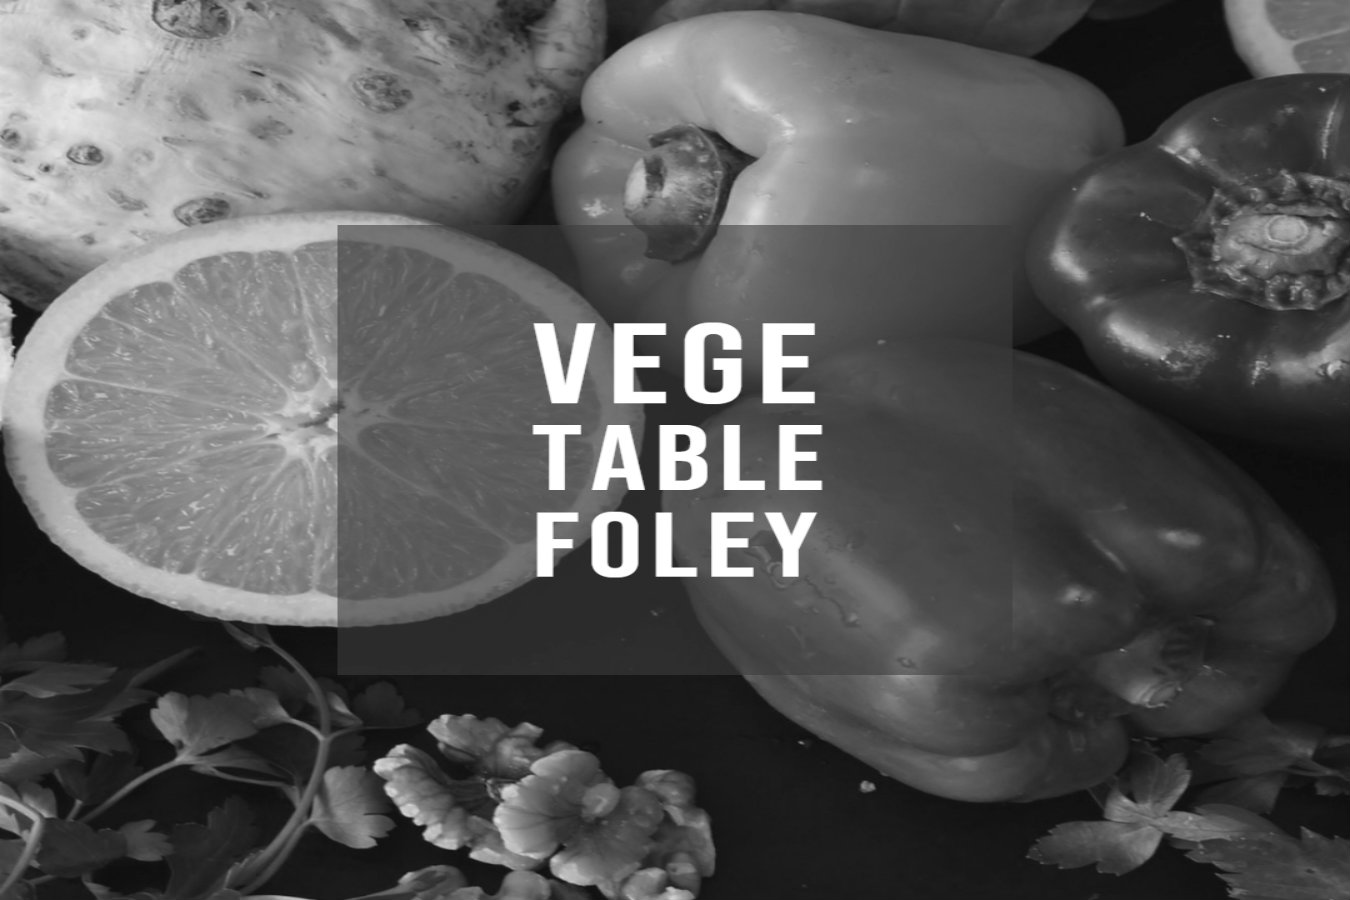 Gorey Veg Sounds - A cracking foley samples pack created by DansMusicPage. Celery as bones cracking, tomatoes squishing and stabbing and more great high quality sounds in which he entered into the public domain. Check them out!.